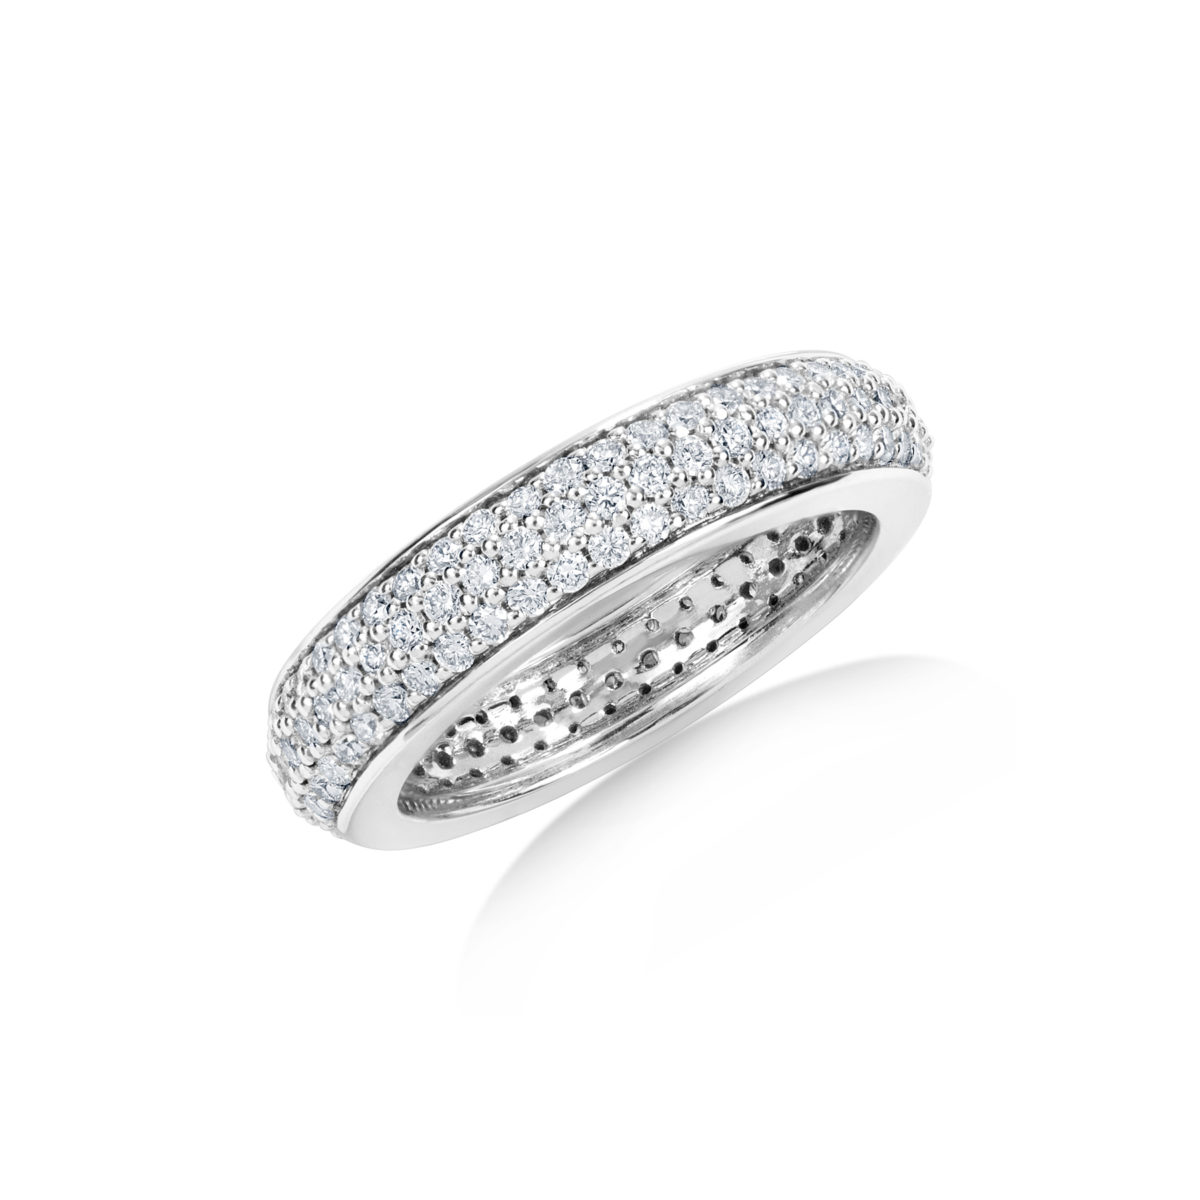 coffin pave moiss diamonds pav mod canadian kristin wedding eleanor halo jewelry diamond products bands shank band